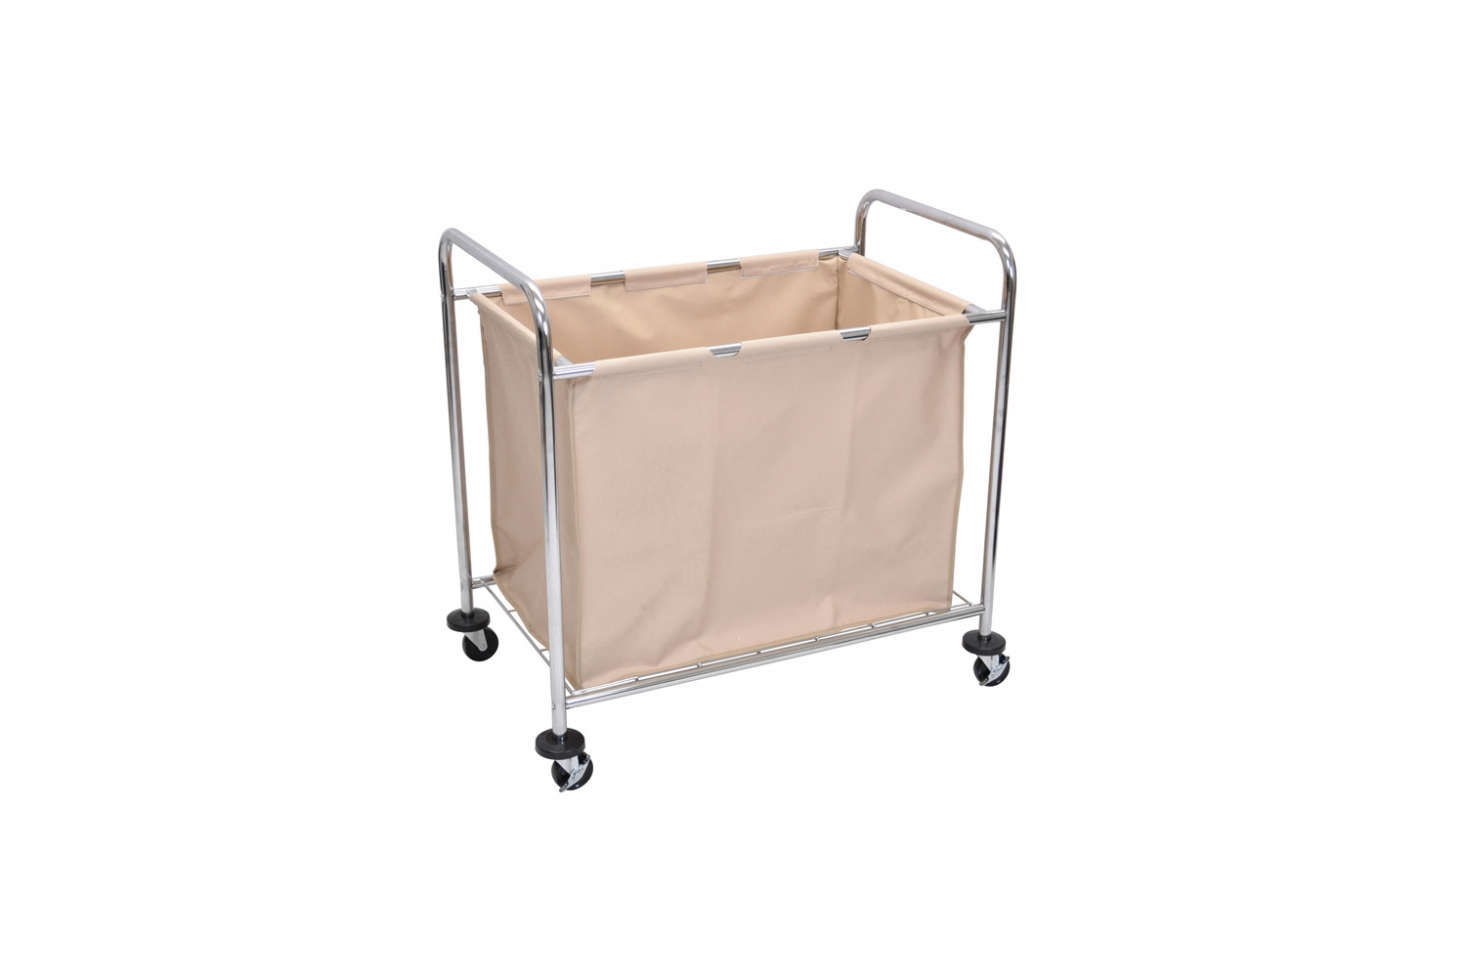 Canvas Hamper Bags 5 Favorites Wheeled Canvas Laundry Hampers The